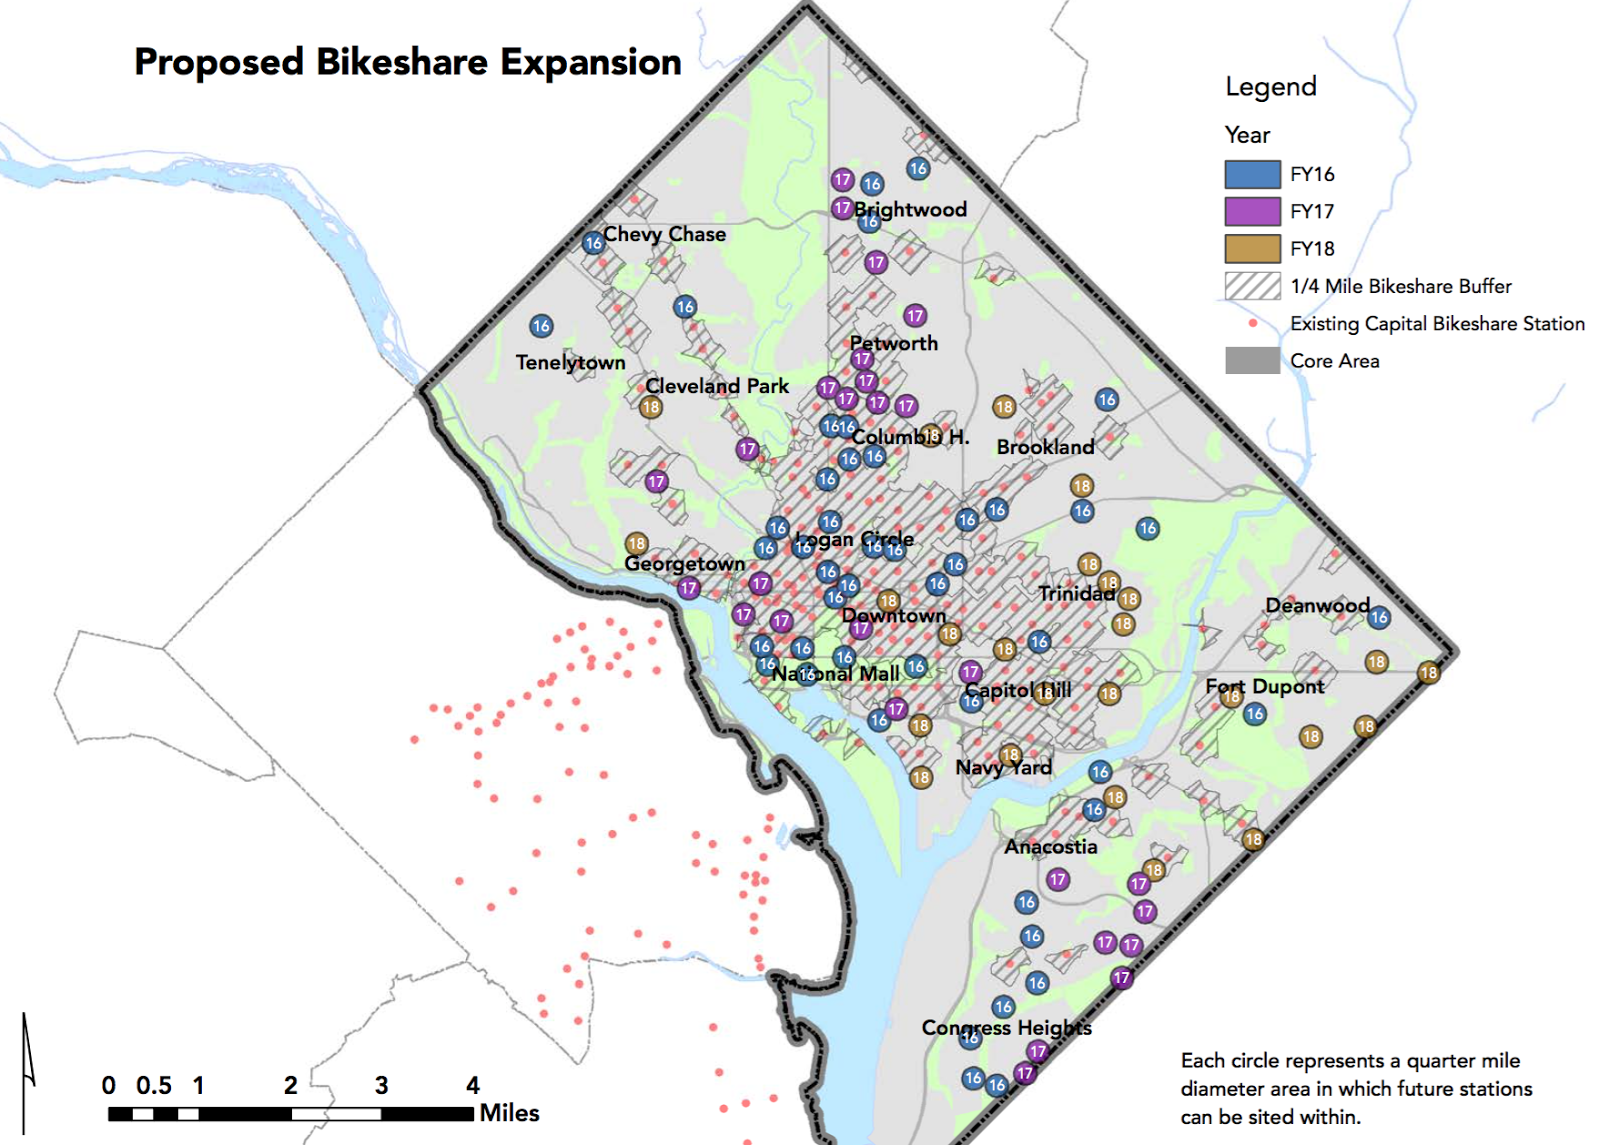 New Columbia Heights: Capital Bikeshare to add and expand stations on